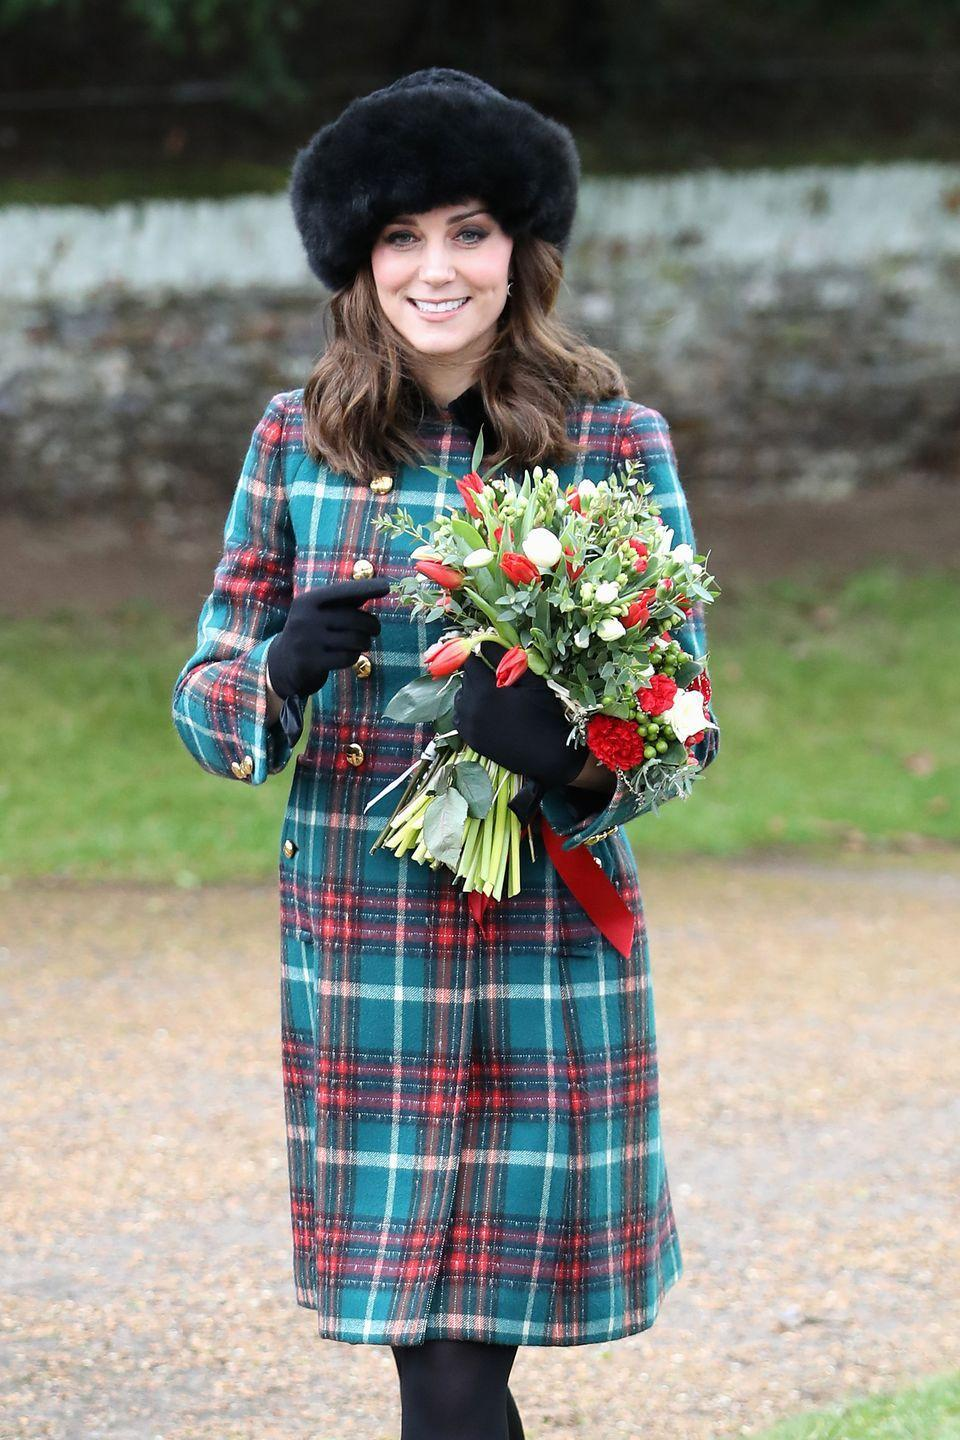 """<p>Even if you're only seeing people over Zoom, make the day festive by donning a chic look. Take a page from the Duchess of Cambridge's book and try out a chic tartan print for the holiday. But, whatever you choose, make sure there's plenty of room in the waist. </p><p><strong>More: </strong><a href=""""https://www.townandcountrymag.com/style/fashion-trends/g22613399/thanksgiving-day-outfits/"""" rel=""""nofollow noopener"""" target=""""_blank"""" data-ylk=""""slk:10 Stylish Outfits to Wear on Thanksgiving Day"""" class=""""link rapid-noclick-resp"""">10 Stylish Outfits to Wear on Thanksgiving Day</a></p>"""